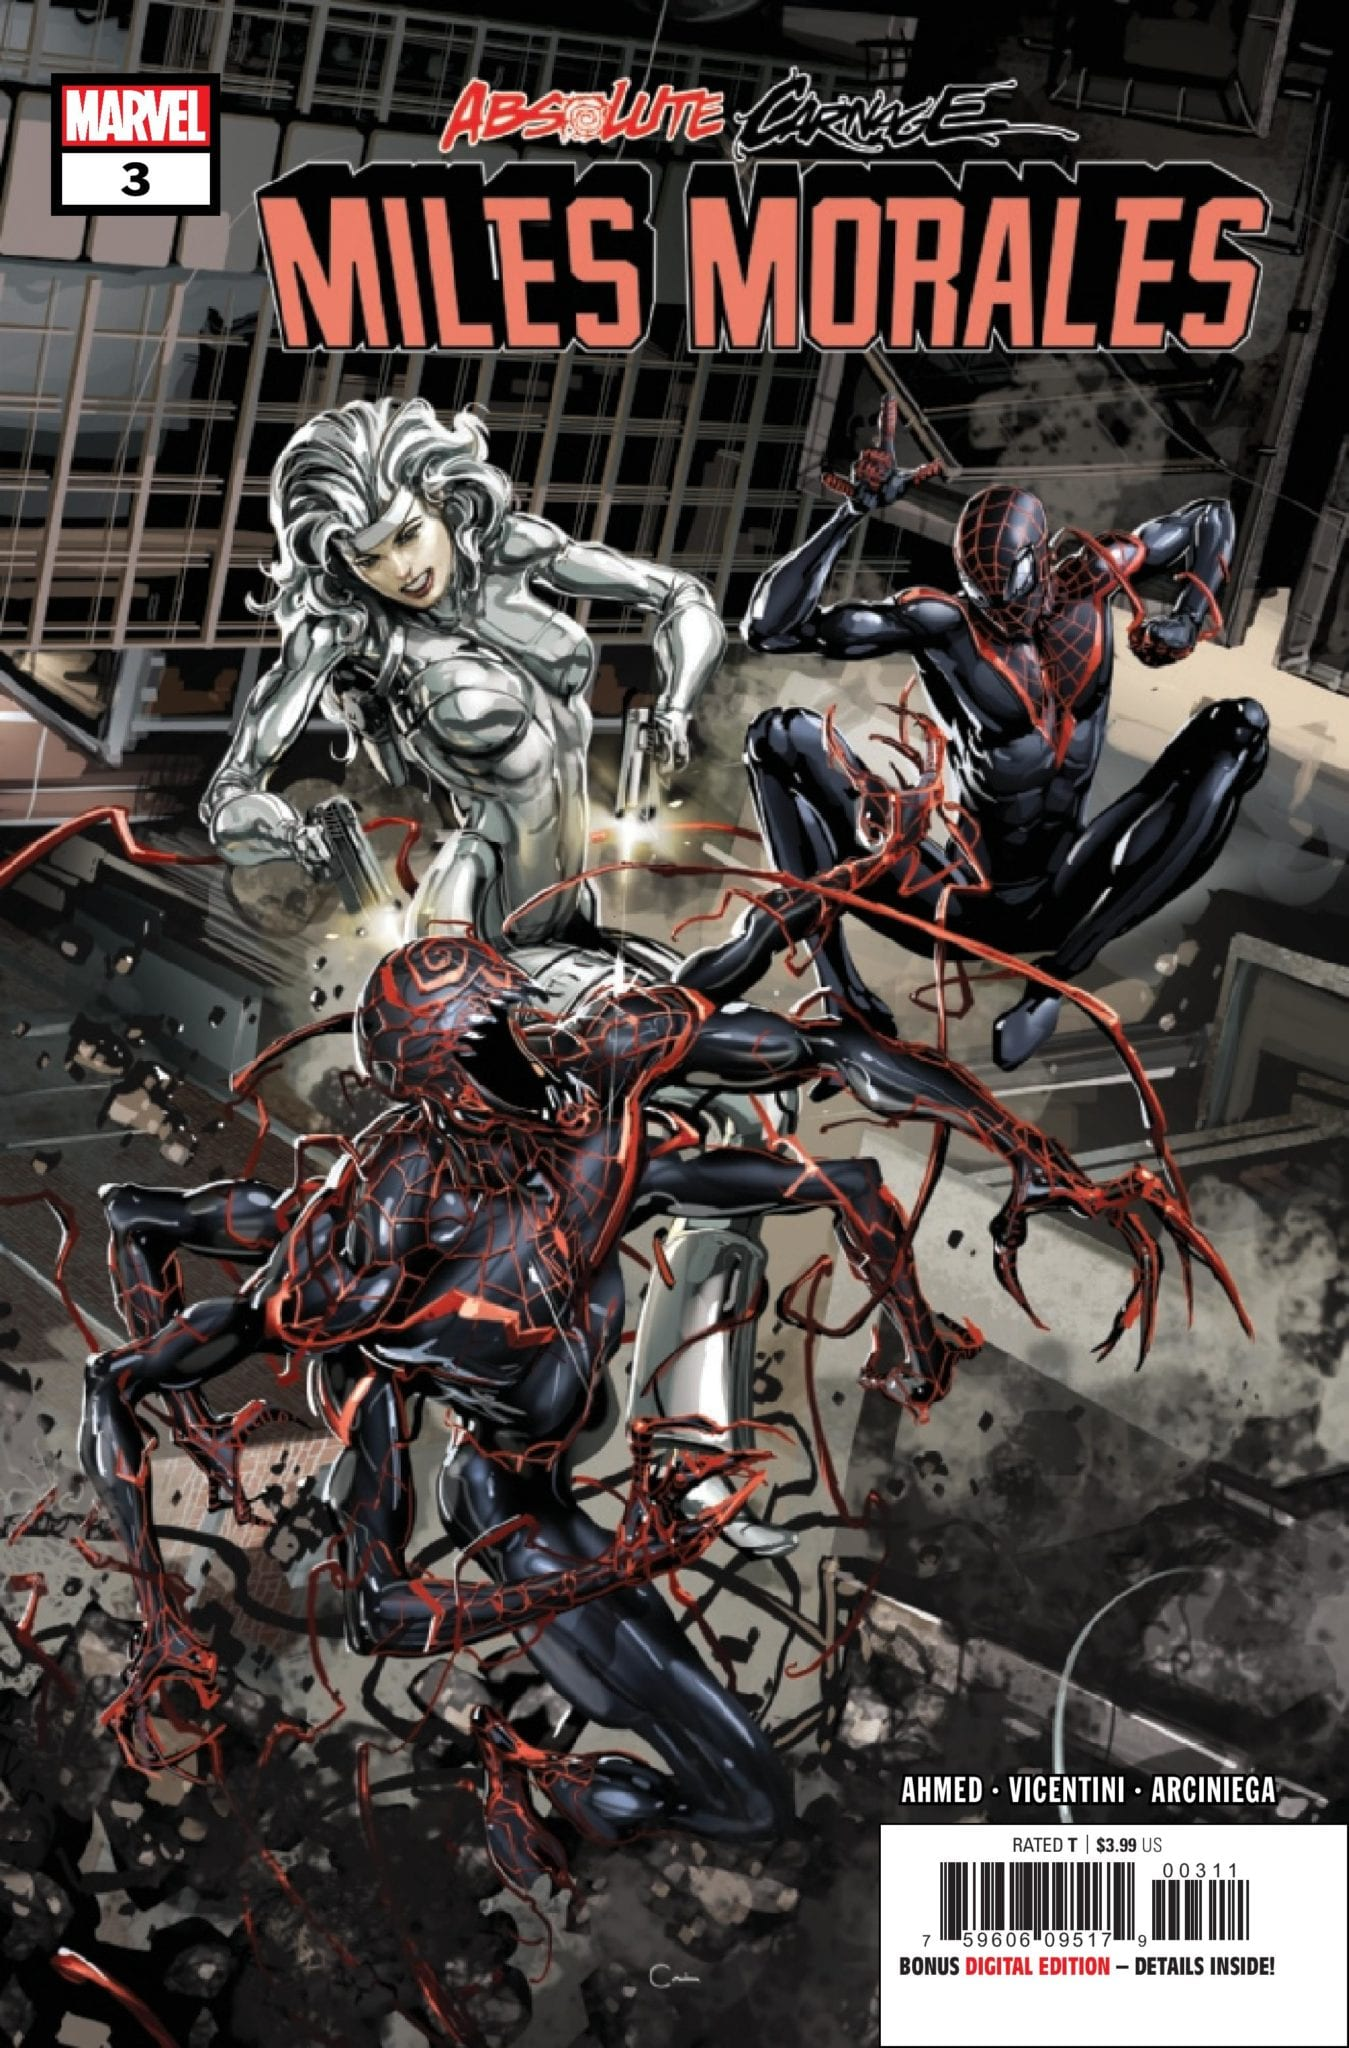 Exclusive Preview: ABSOLUTE CARNAGE: MILES MORALES #3